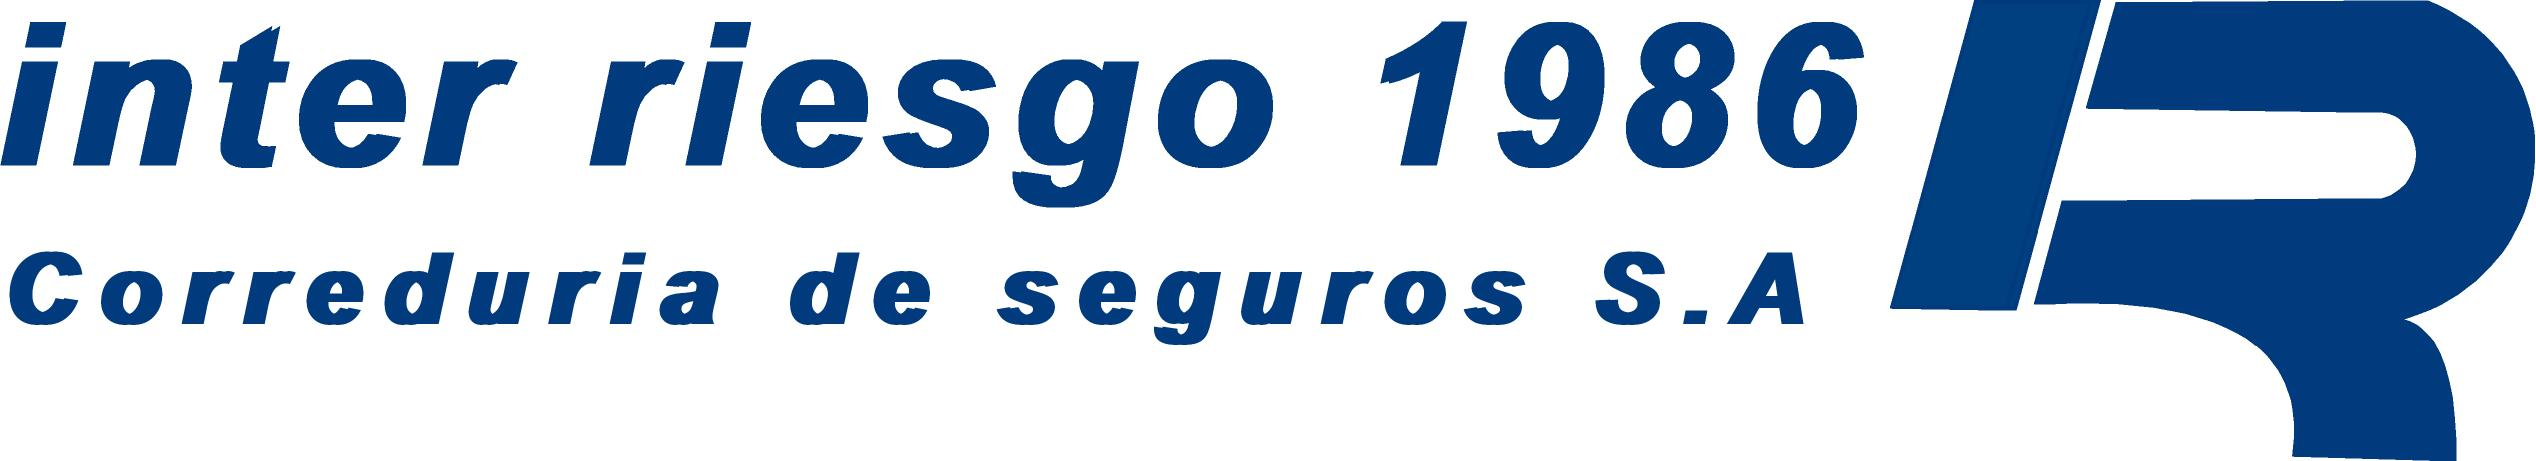 Logo Interriesgo